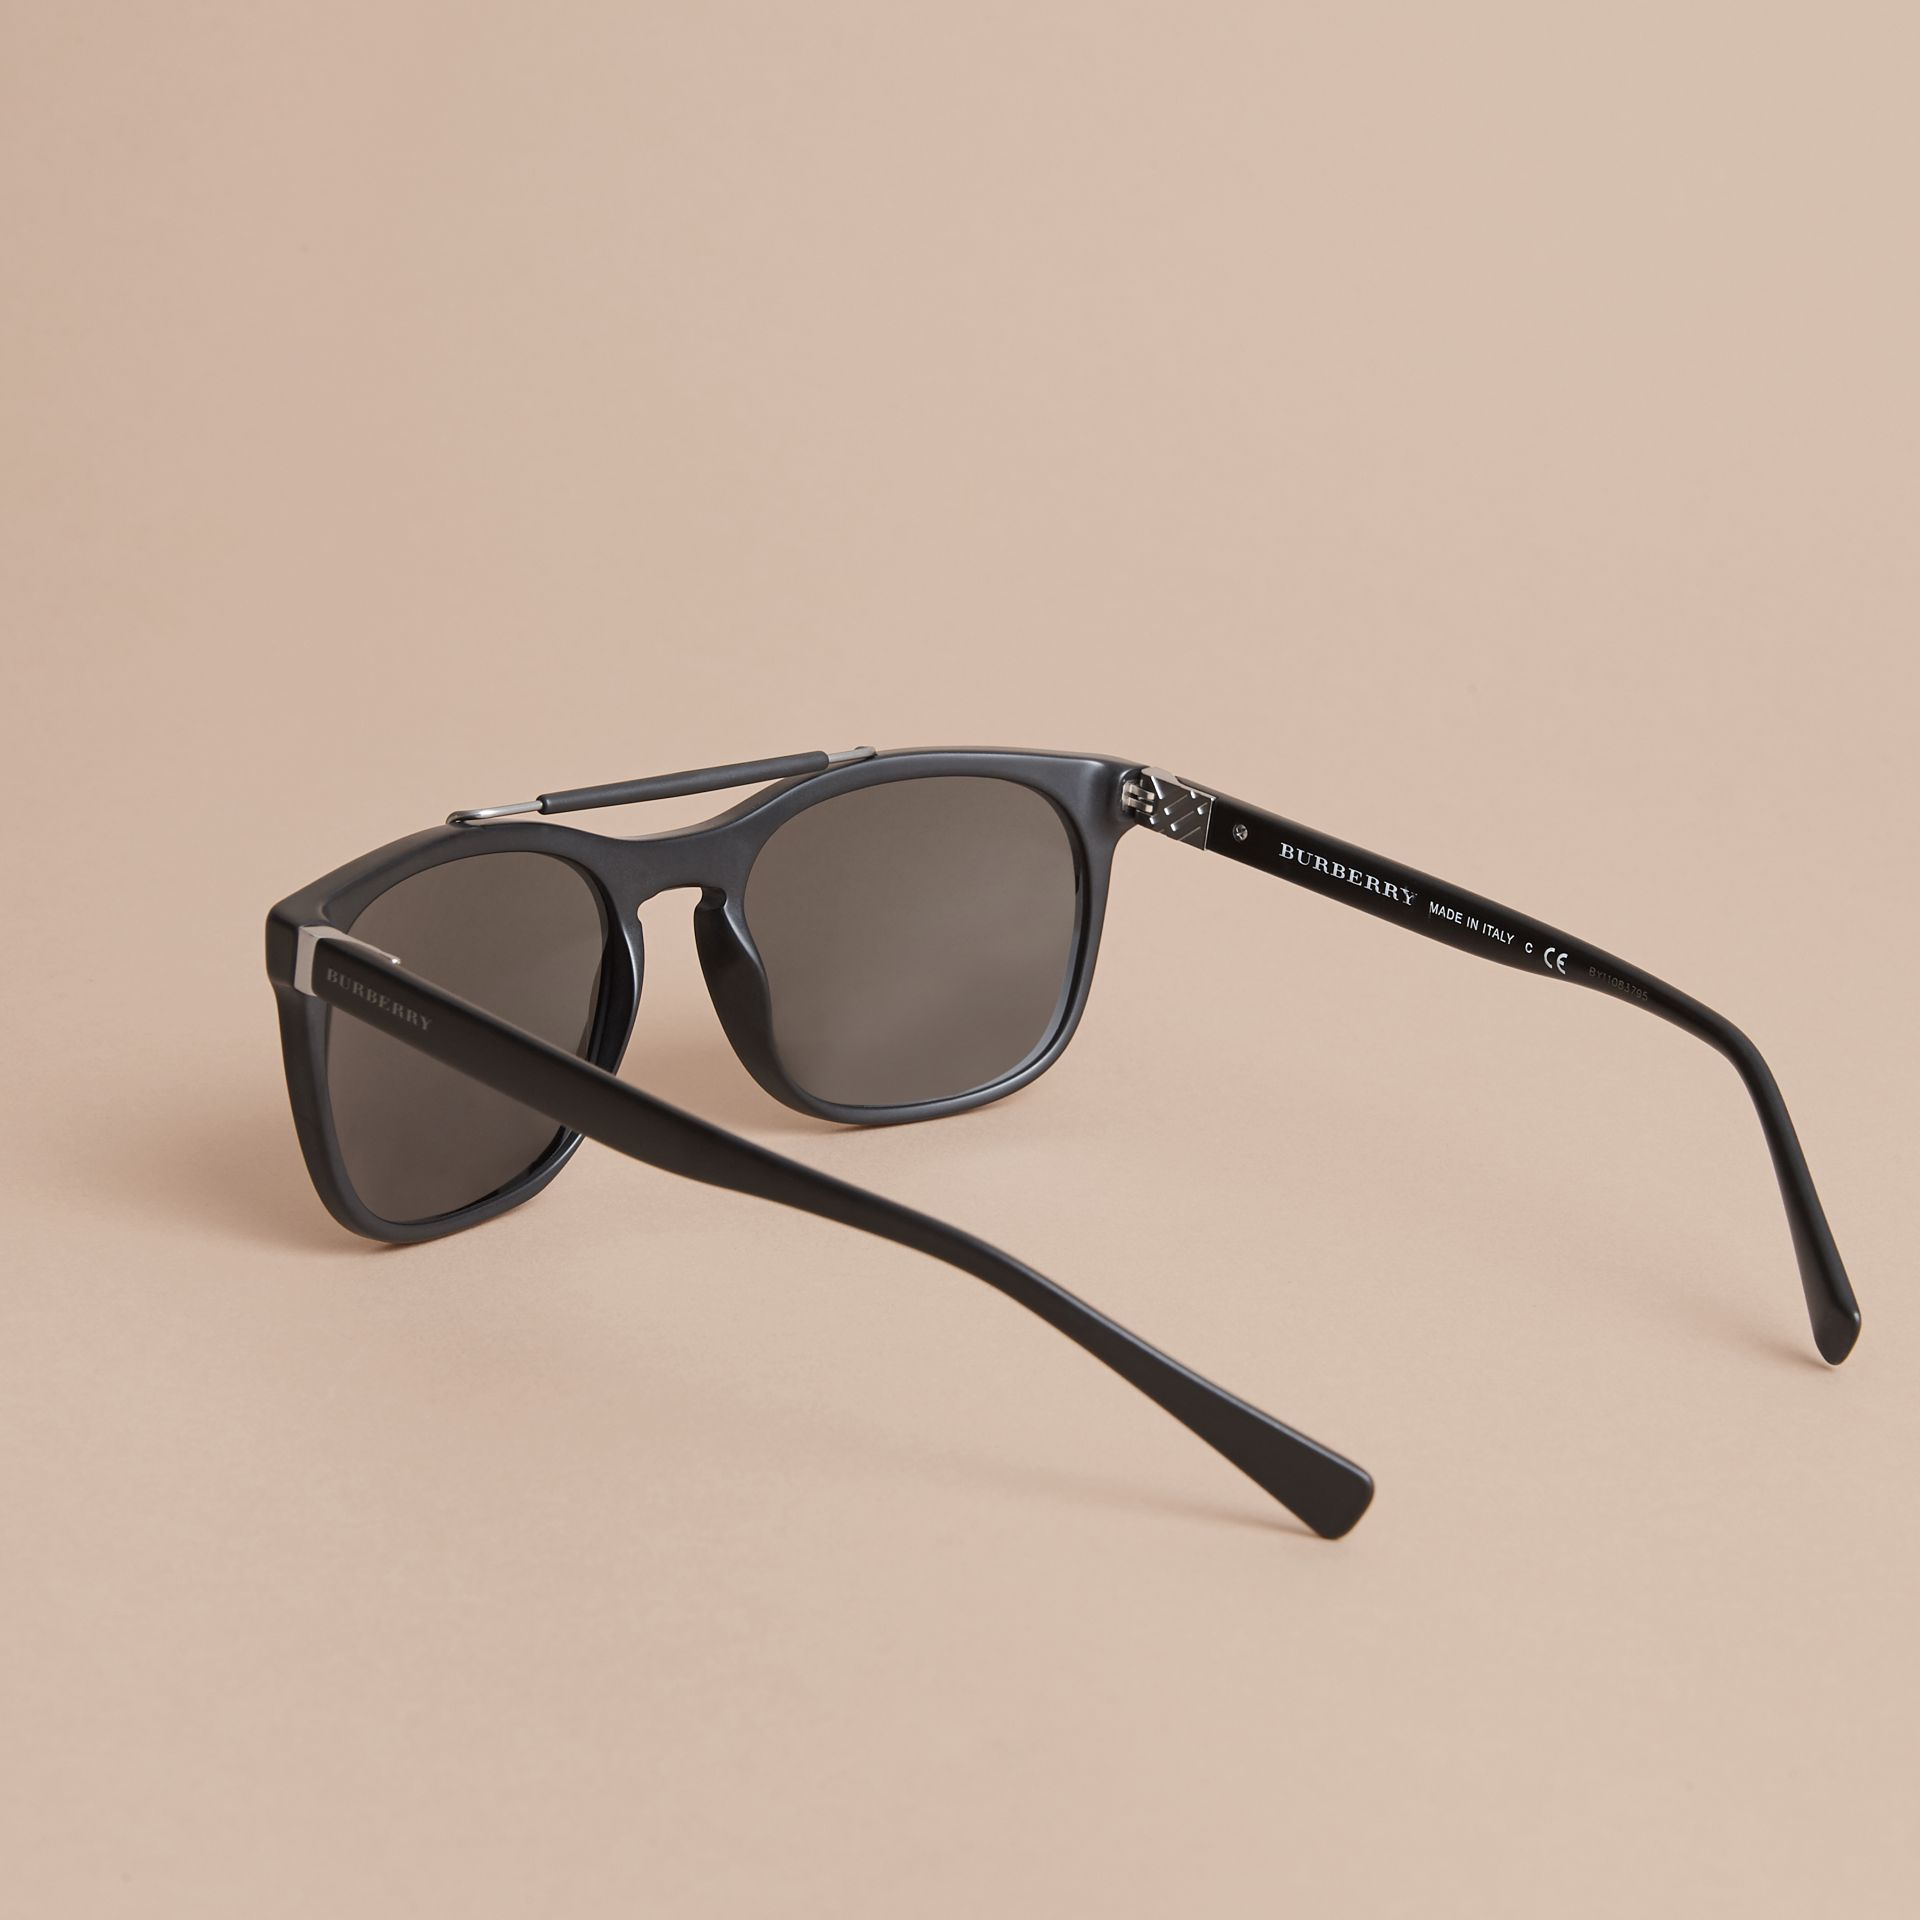 Top Bar Square Frame Sunglasses in Black - Men | Burberry - gallery image 3